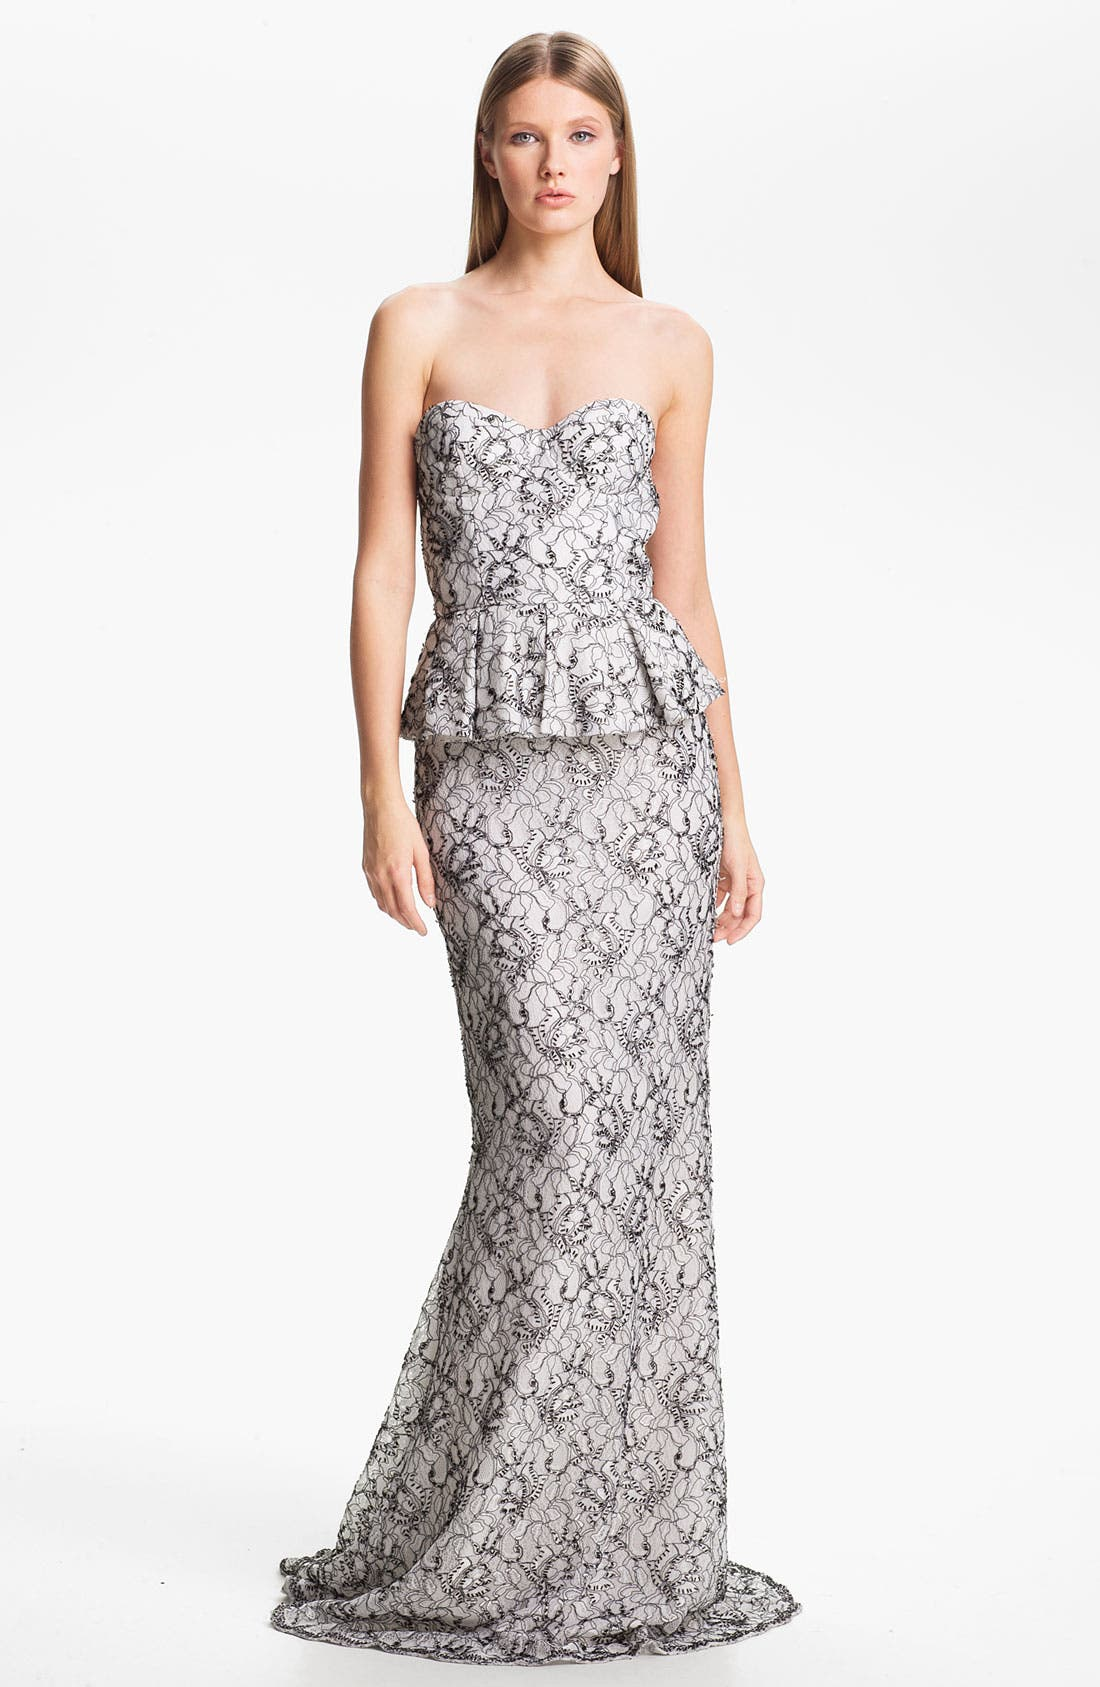 Main Image - Alice + Olivia 'Penelope' Strapless Mermaid Gown